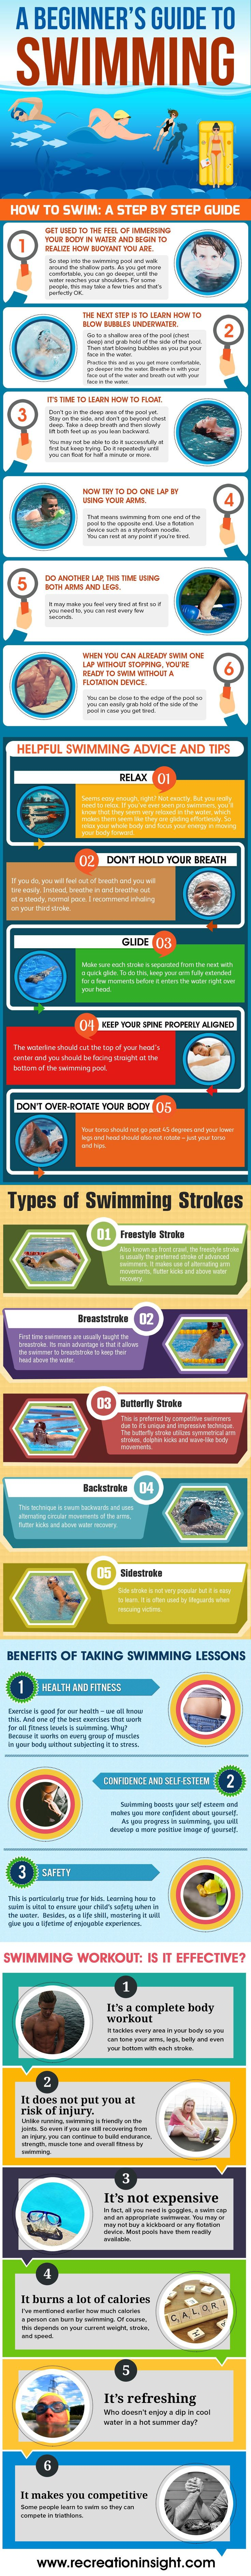 The Ultimate Swimming Guide for A Beginner - Infographic